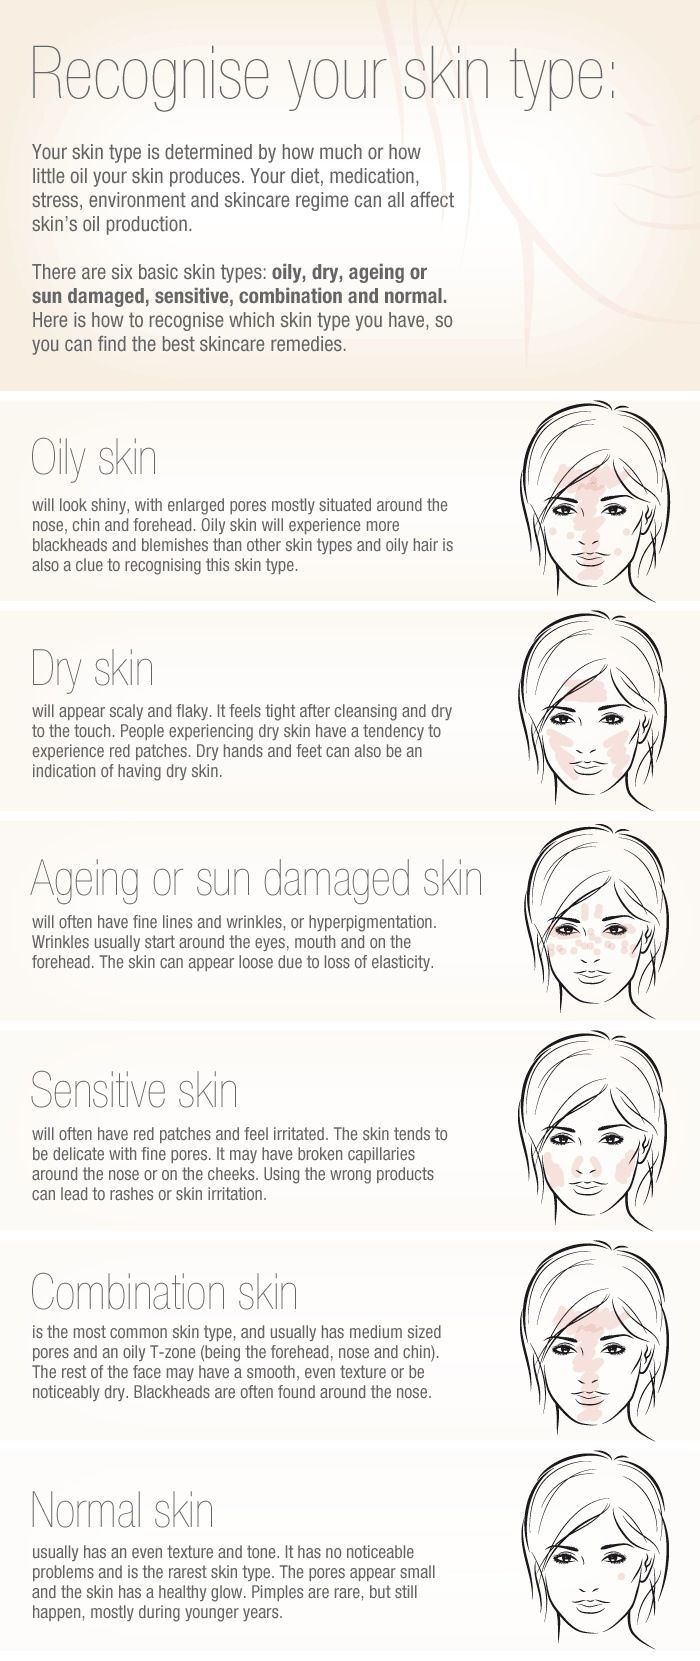 Get in the zone~ What's your skin type? https://m.facebook.com/profile.php?id=206090022902057&m_sess&viewtype=public&__user=100000494005210 and order at www.marykay.com/vanessamckenzie